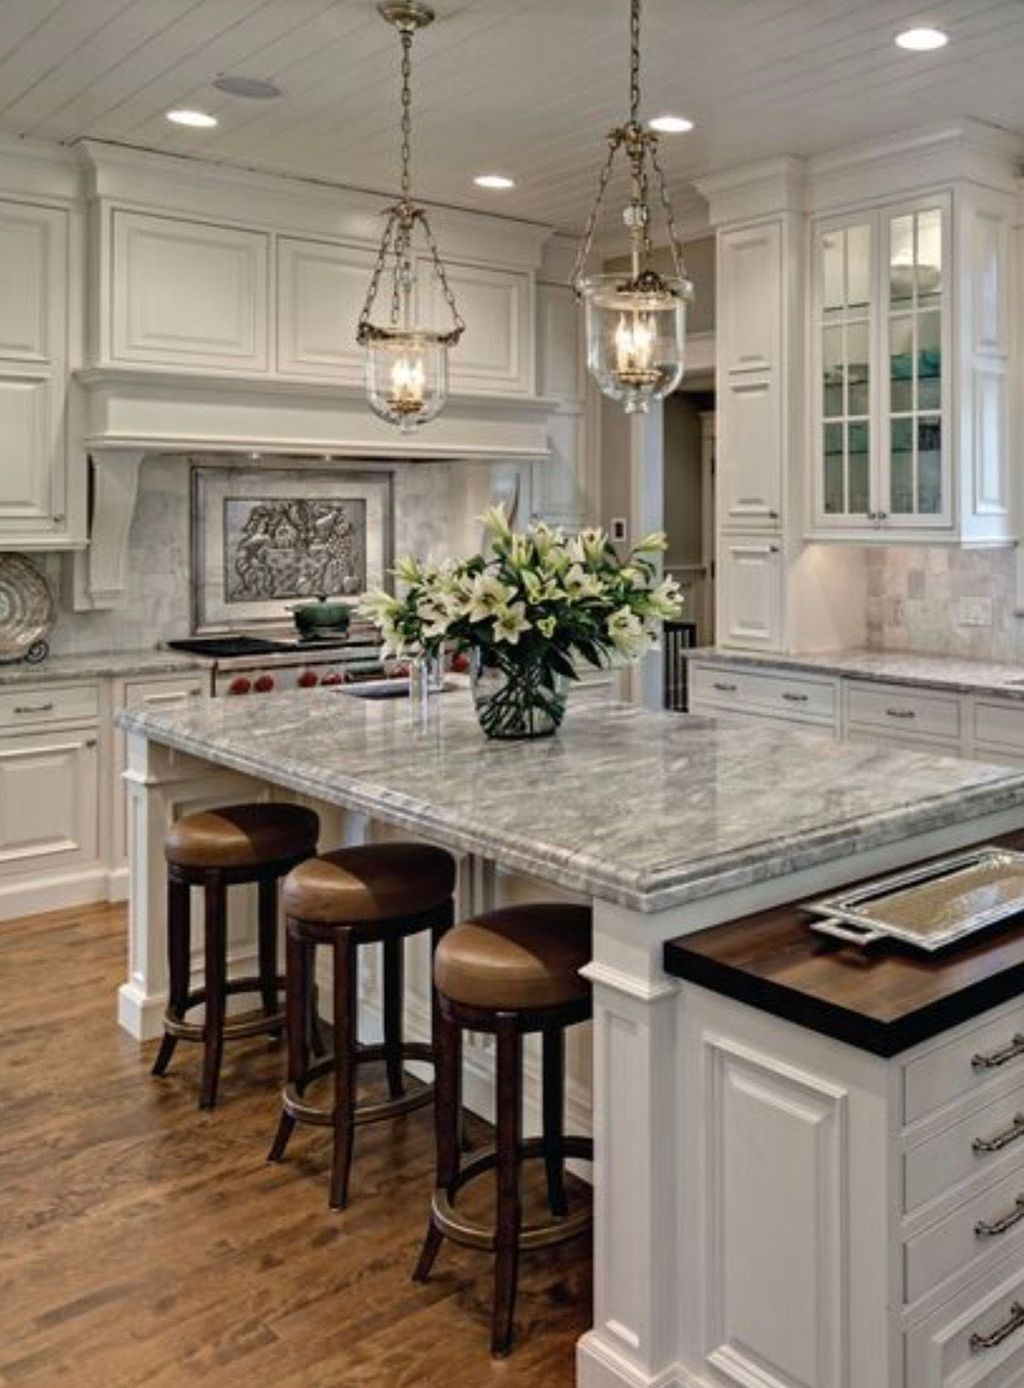 36 popular farmhouse kitchen color ideas to get on best farmhouse kitchen decor ideas and remodel create your dreams id=66017